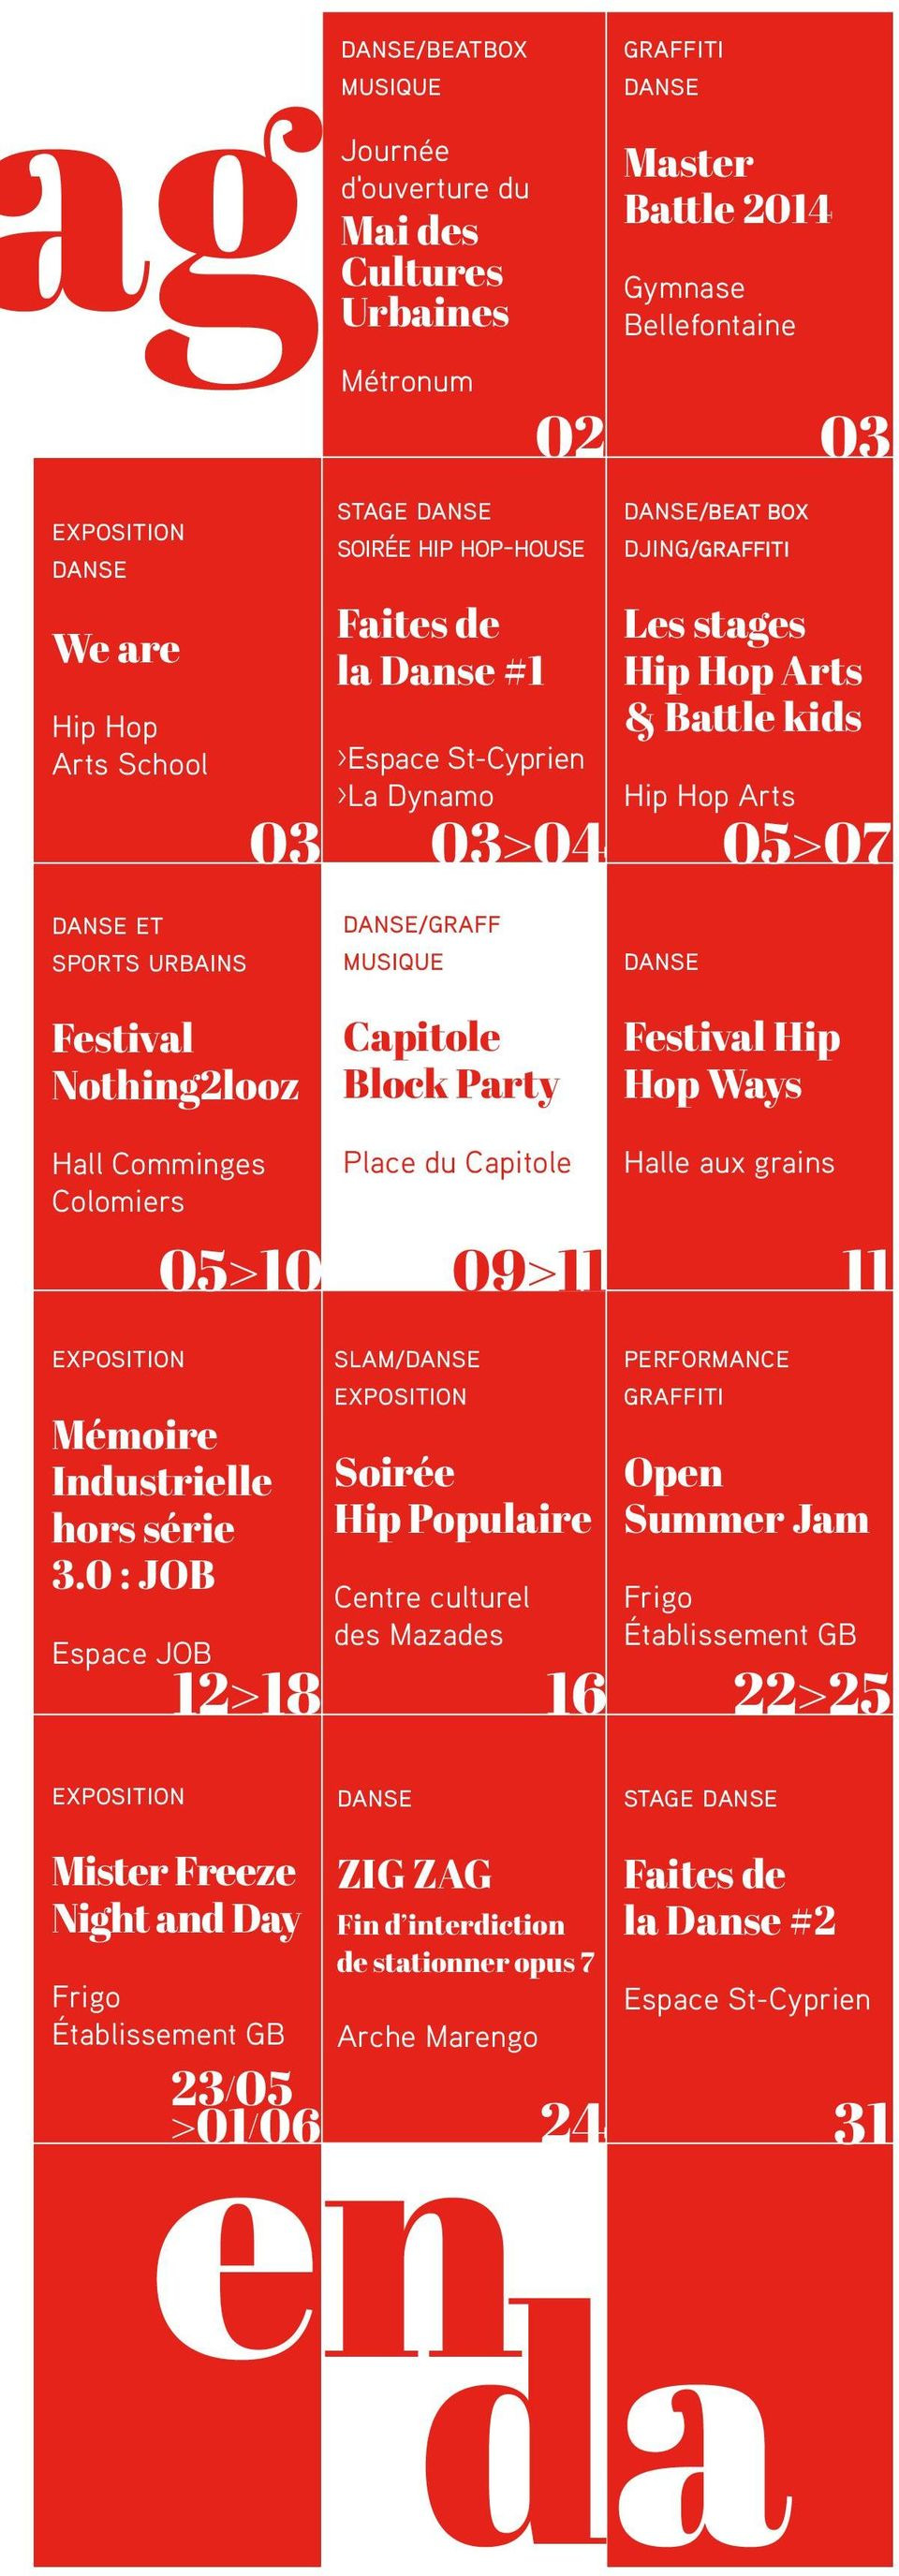 Arts 03 03>04 05>07 danse Festival Nothing2looz Capitole Block Party Festival Hip Hop Ways Hall Comminges Colomiers exposition Mémoire Industrielle hors série 3.